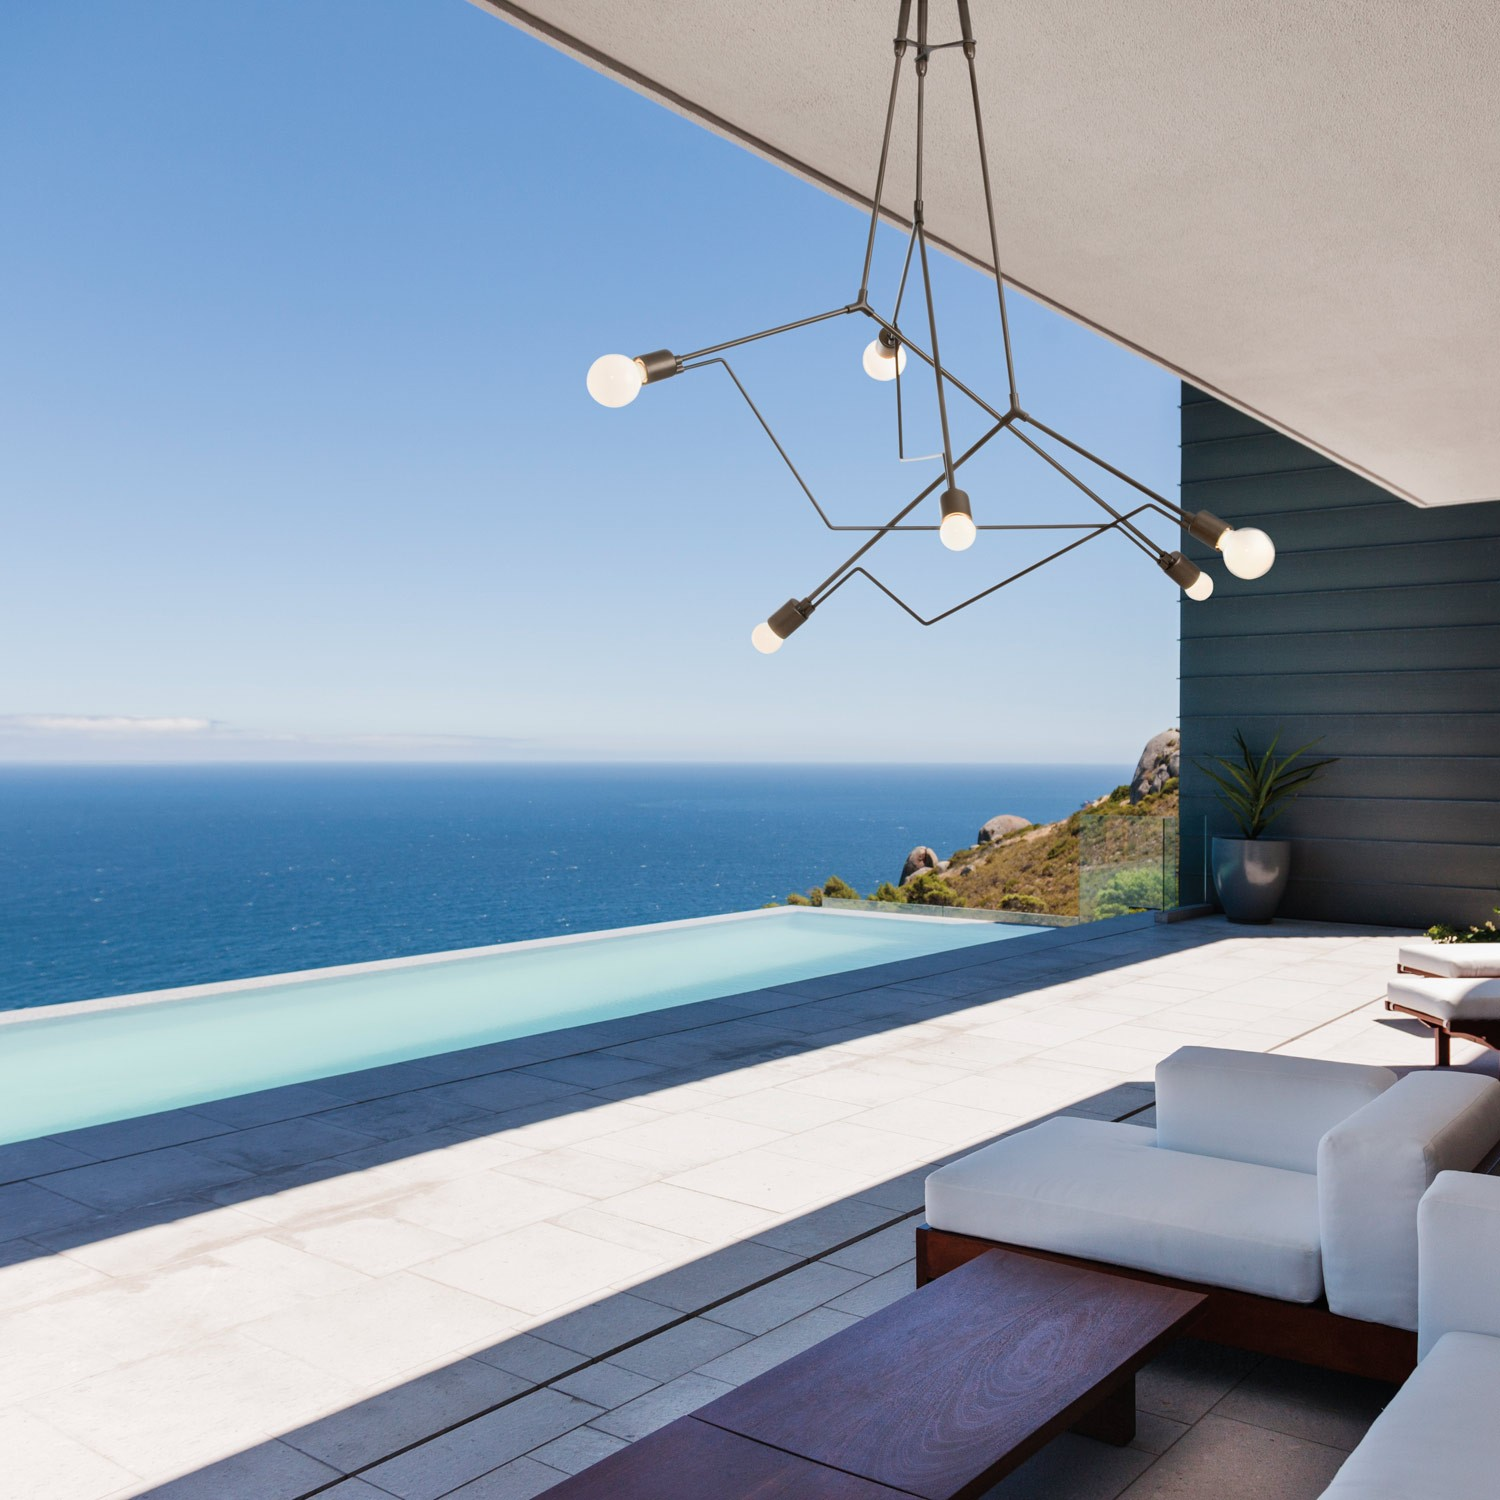 2016 Best Chandeliers | Hubbardton Forge Divergence Outdoor Pendant Light |YLighting